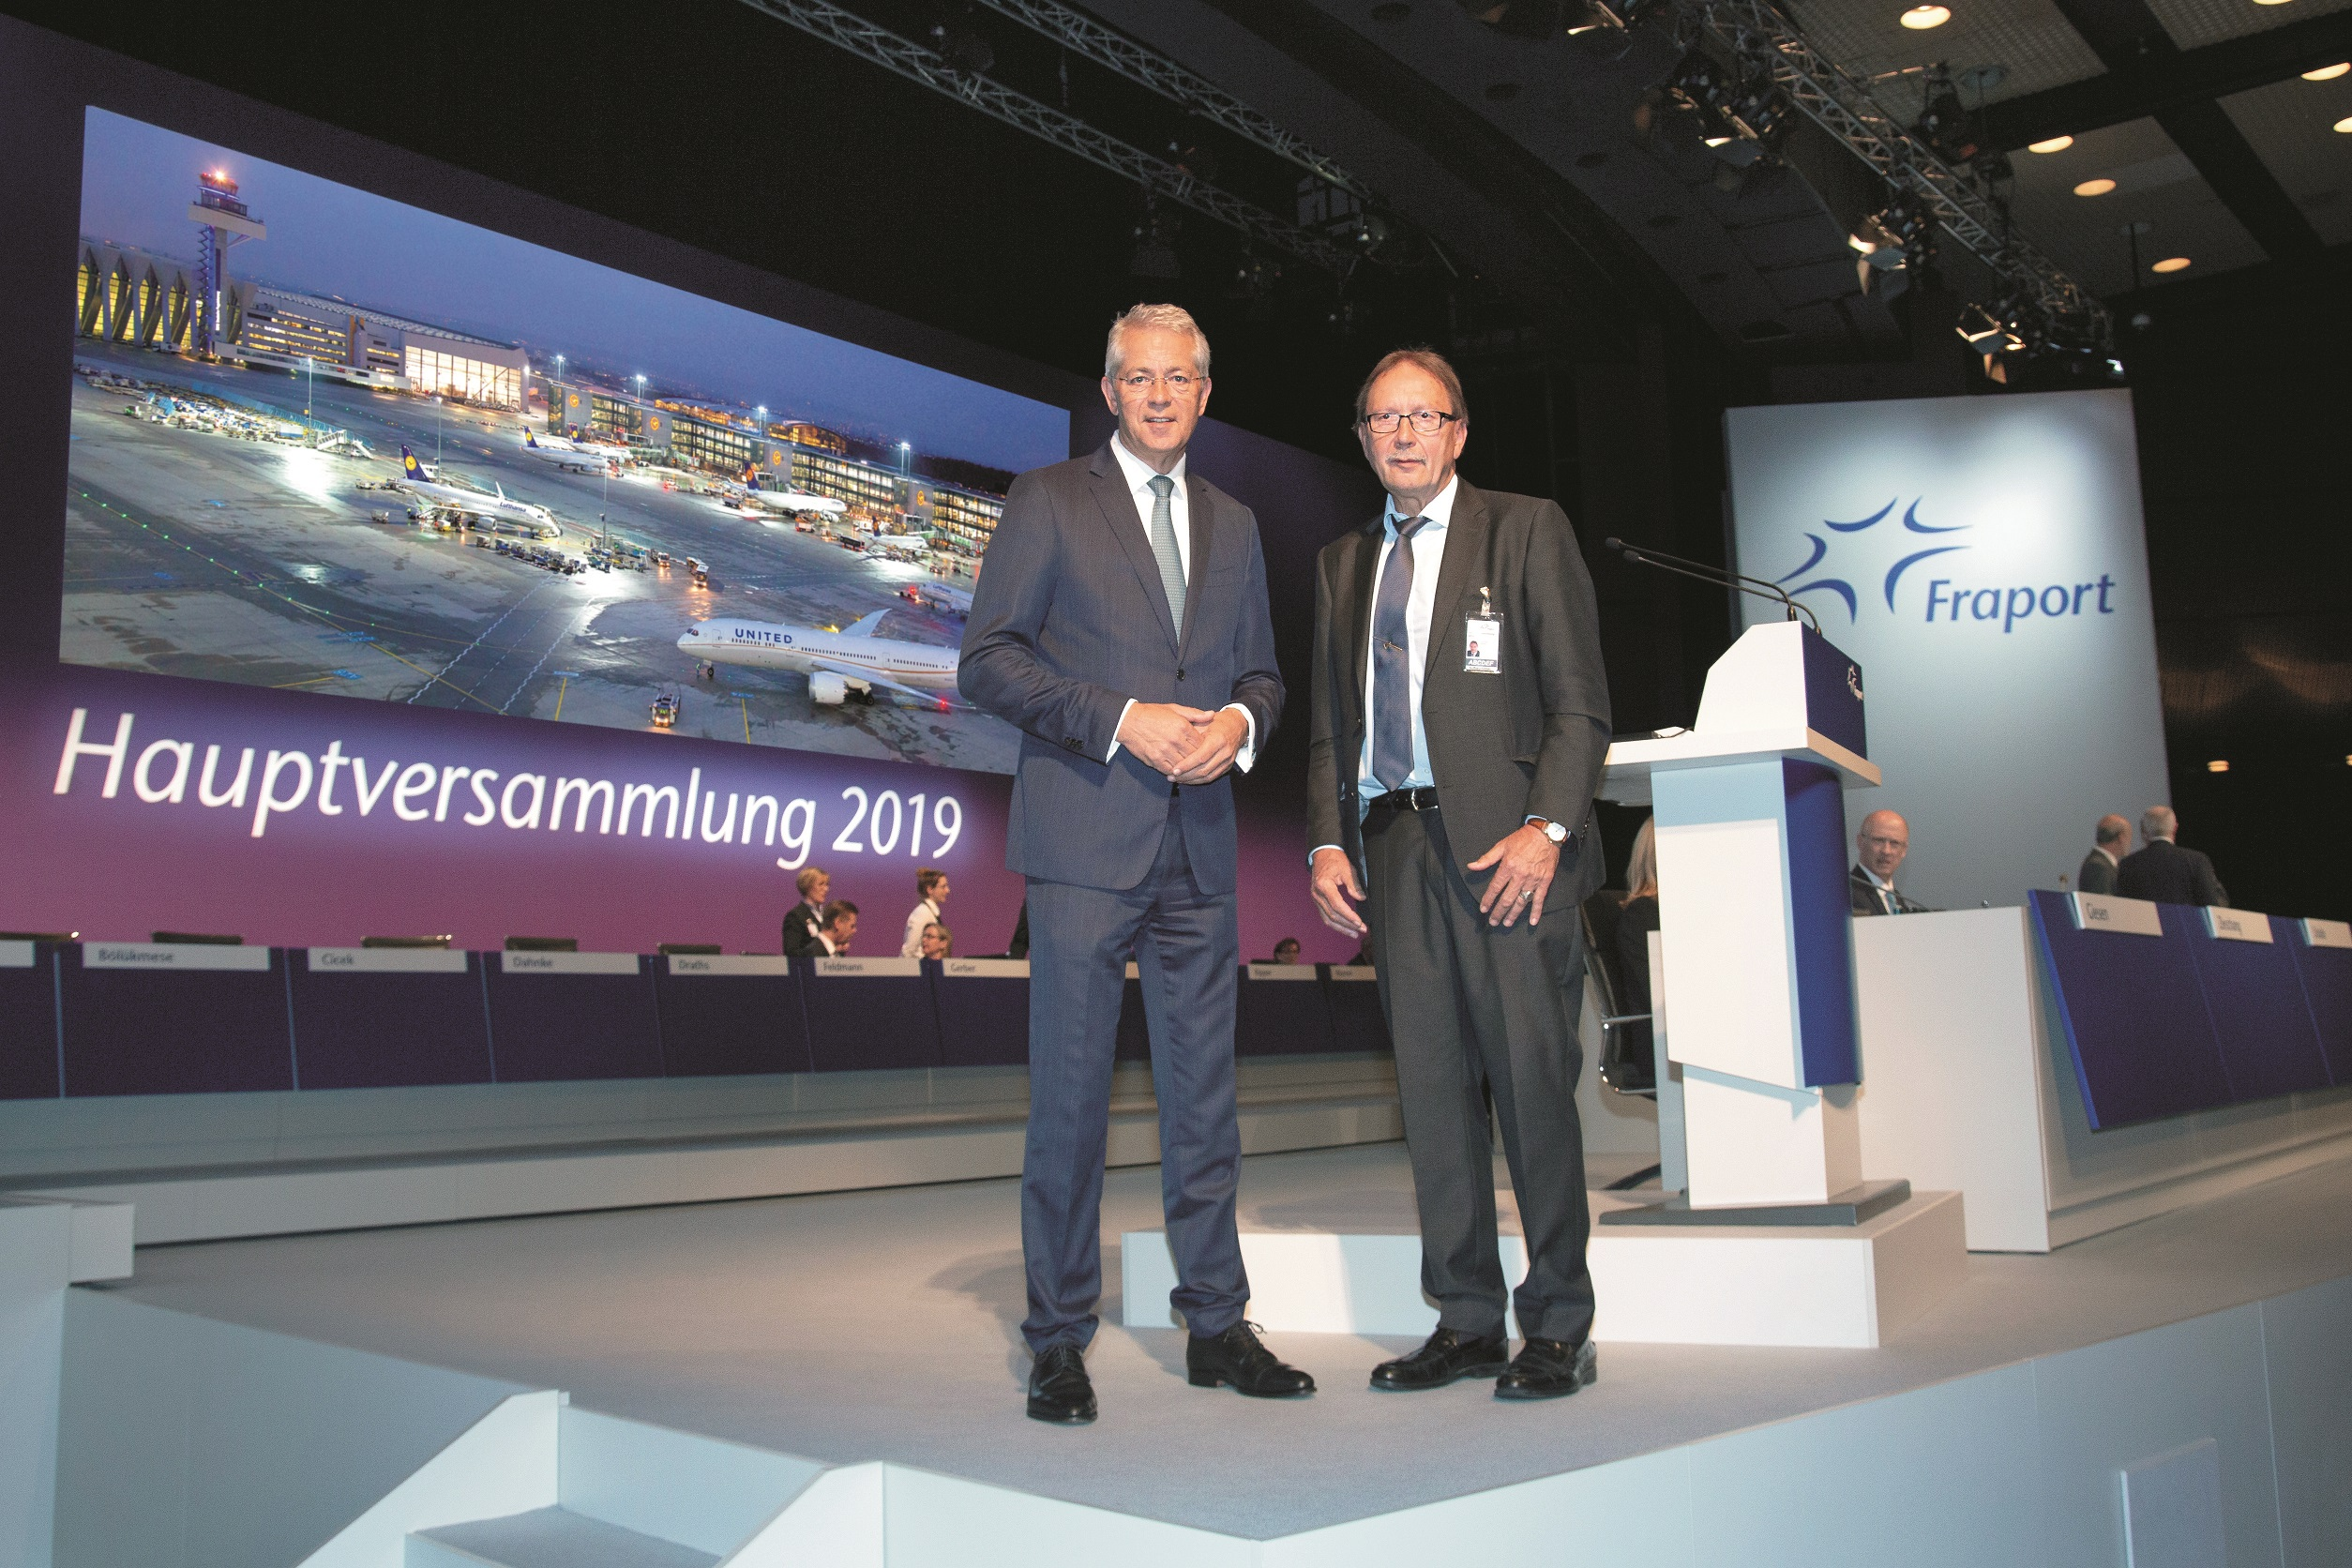 CEO Schulte's speech for Fraport AGM published in advance